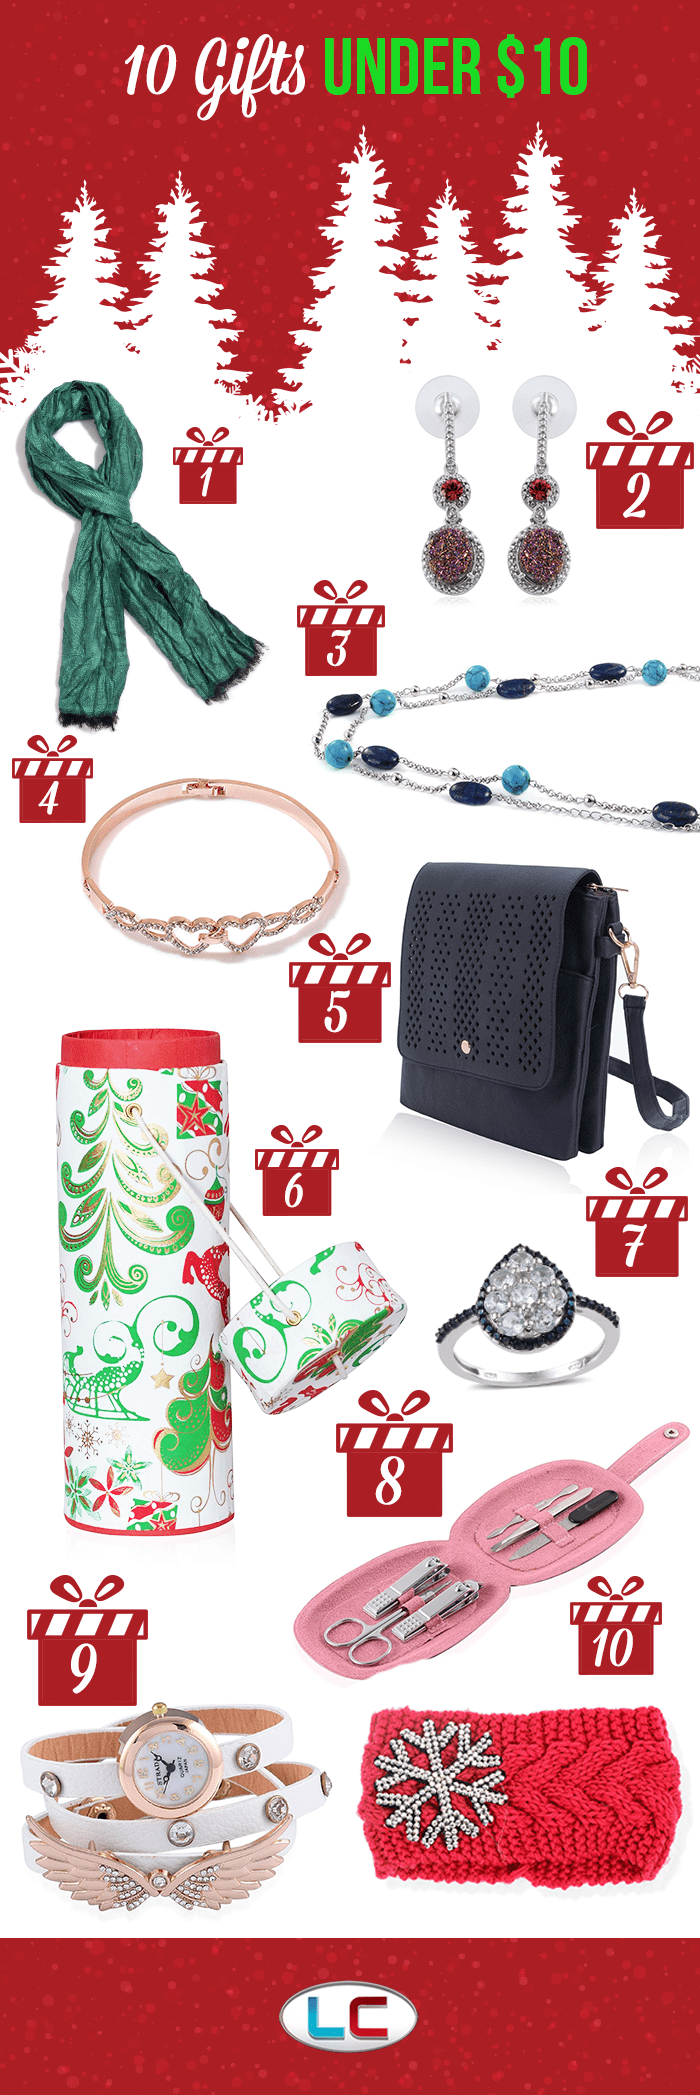 Let your LC help as you shop for under 10 dollars gifts!